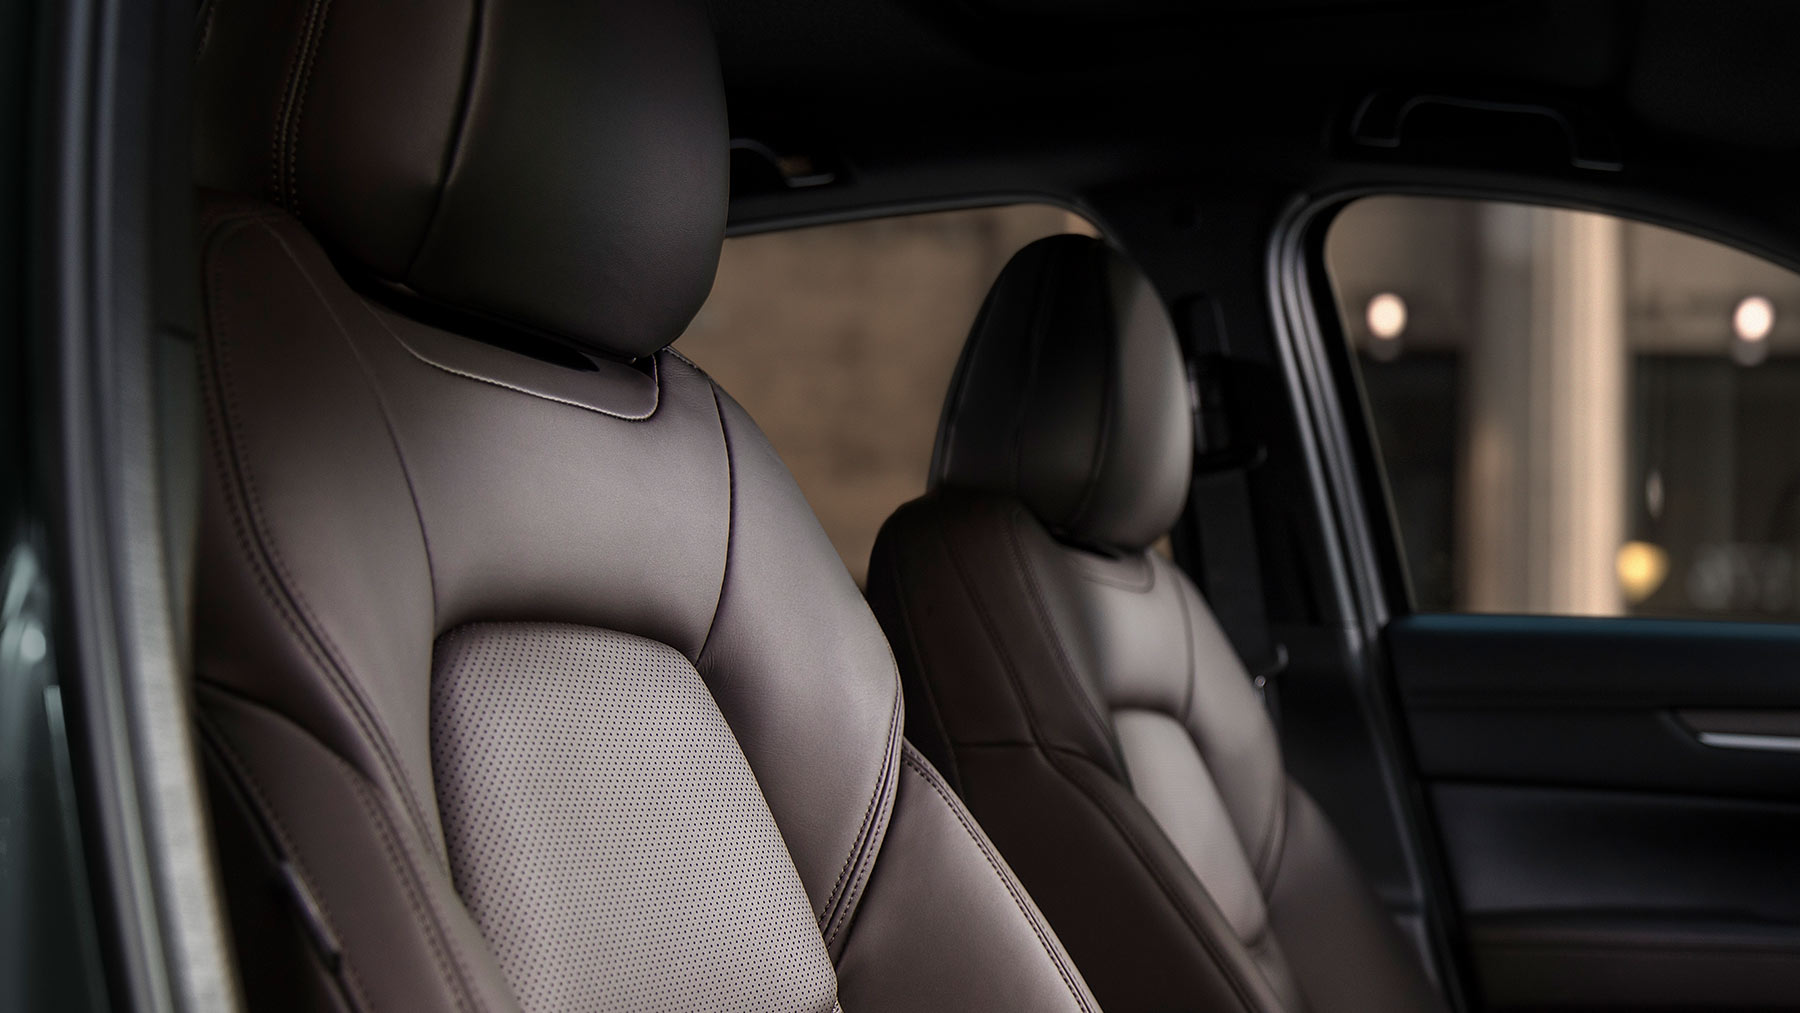 Fine Detailing on the 2019 Mazda CX-5